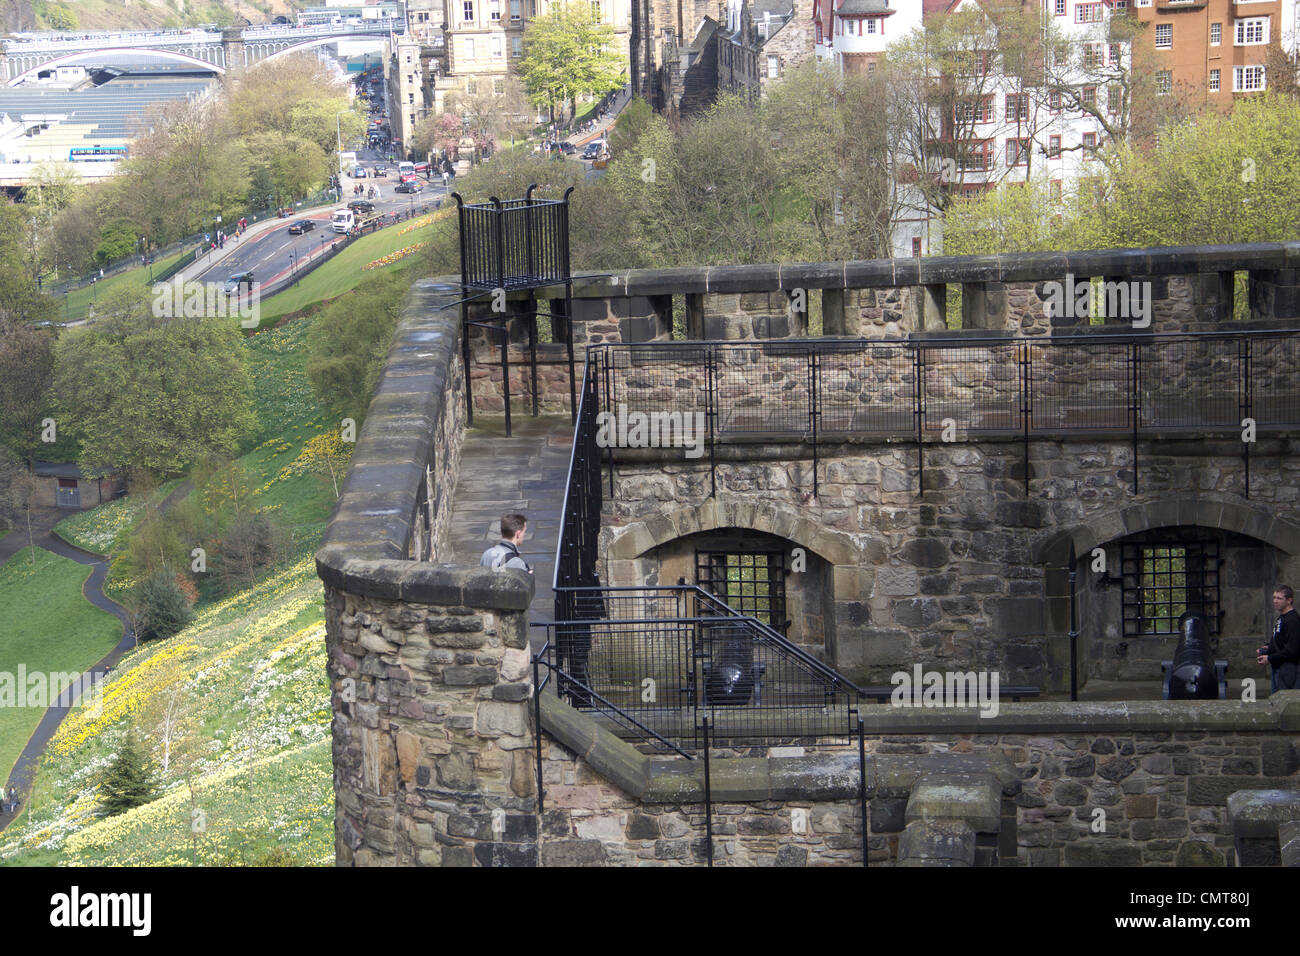 tourists at edinburgh castle this is one of the upper and outer parts of the castle and the steep slope to the side is seen